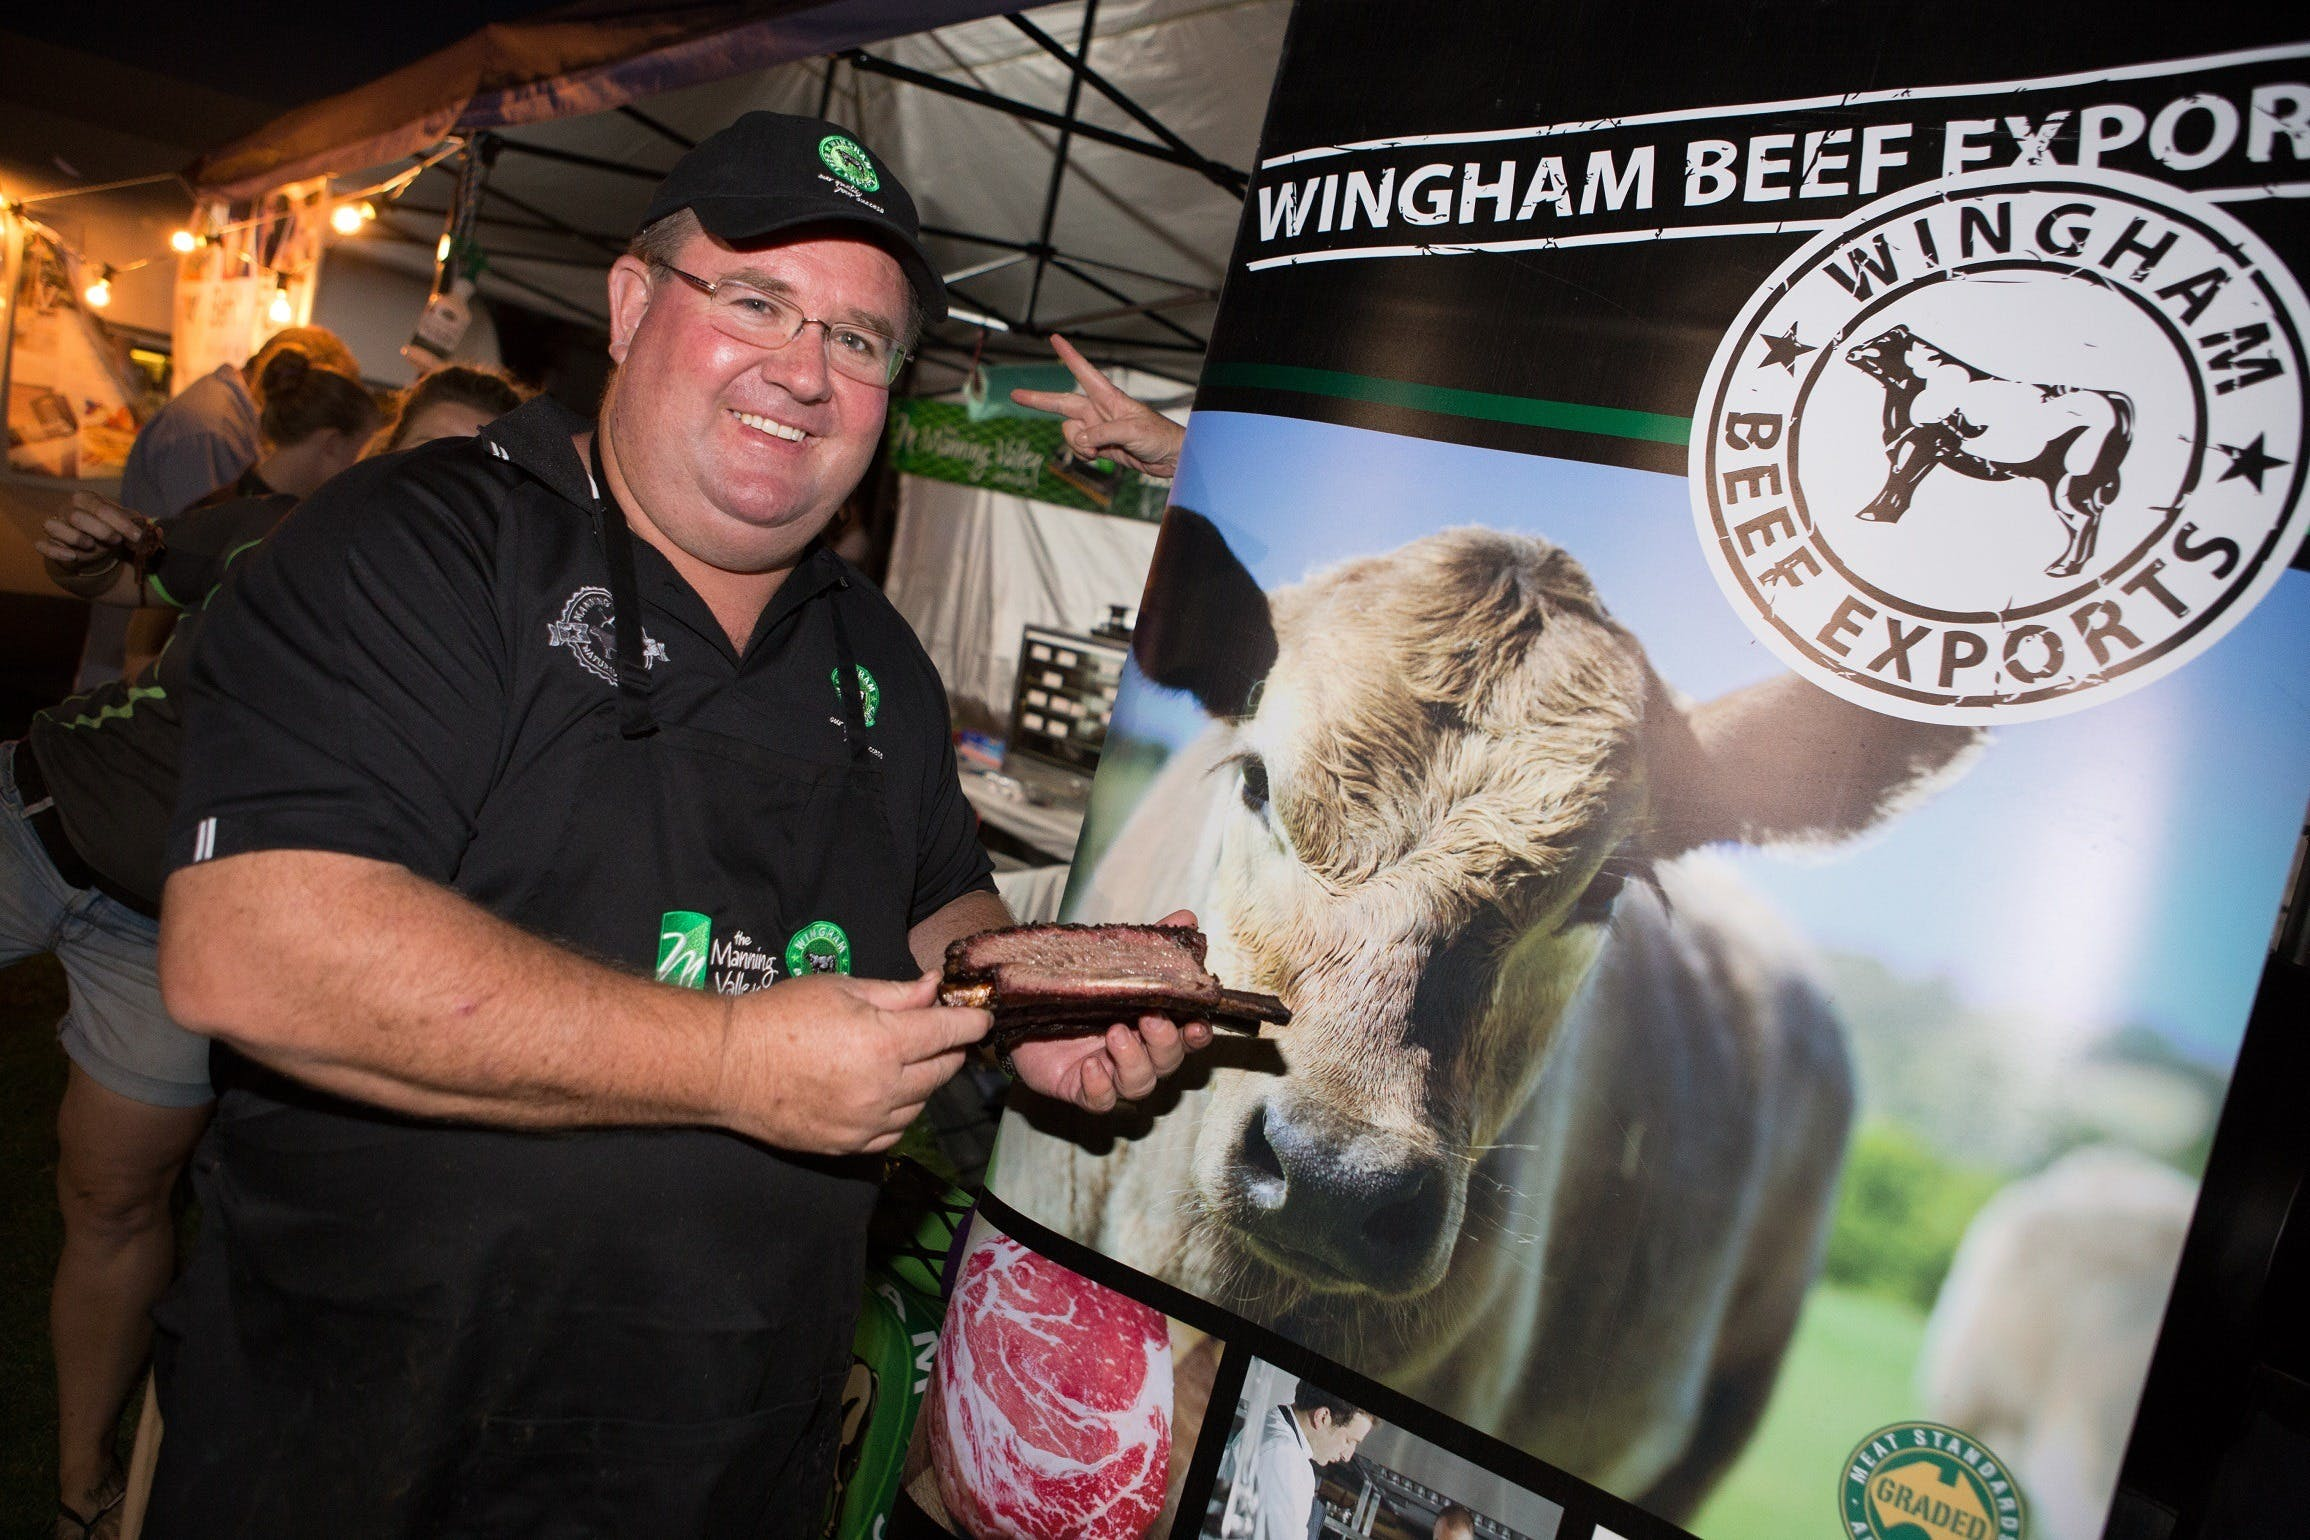 Wingham Beef Exports - Lightning Ridge Tourism